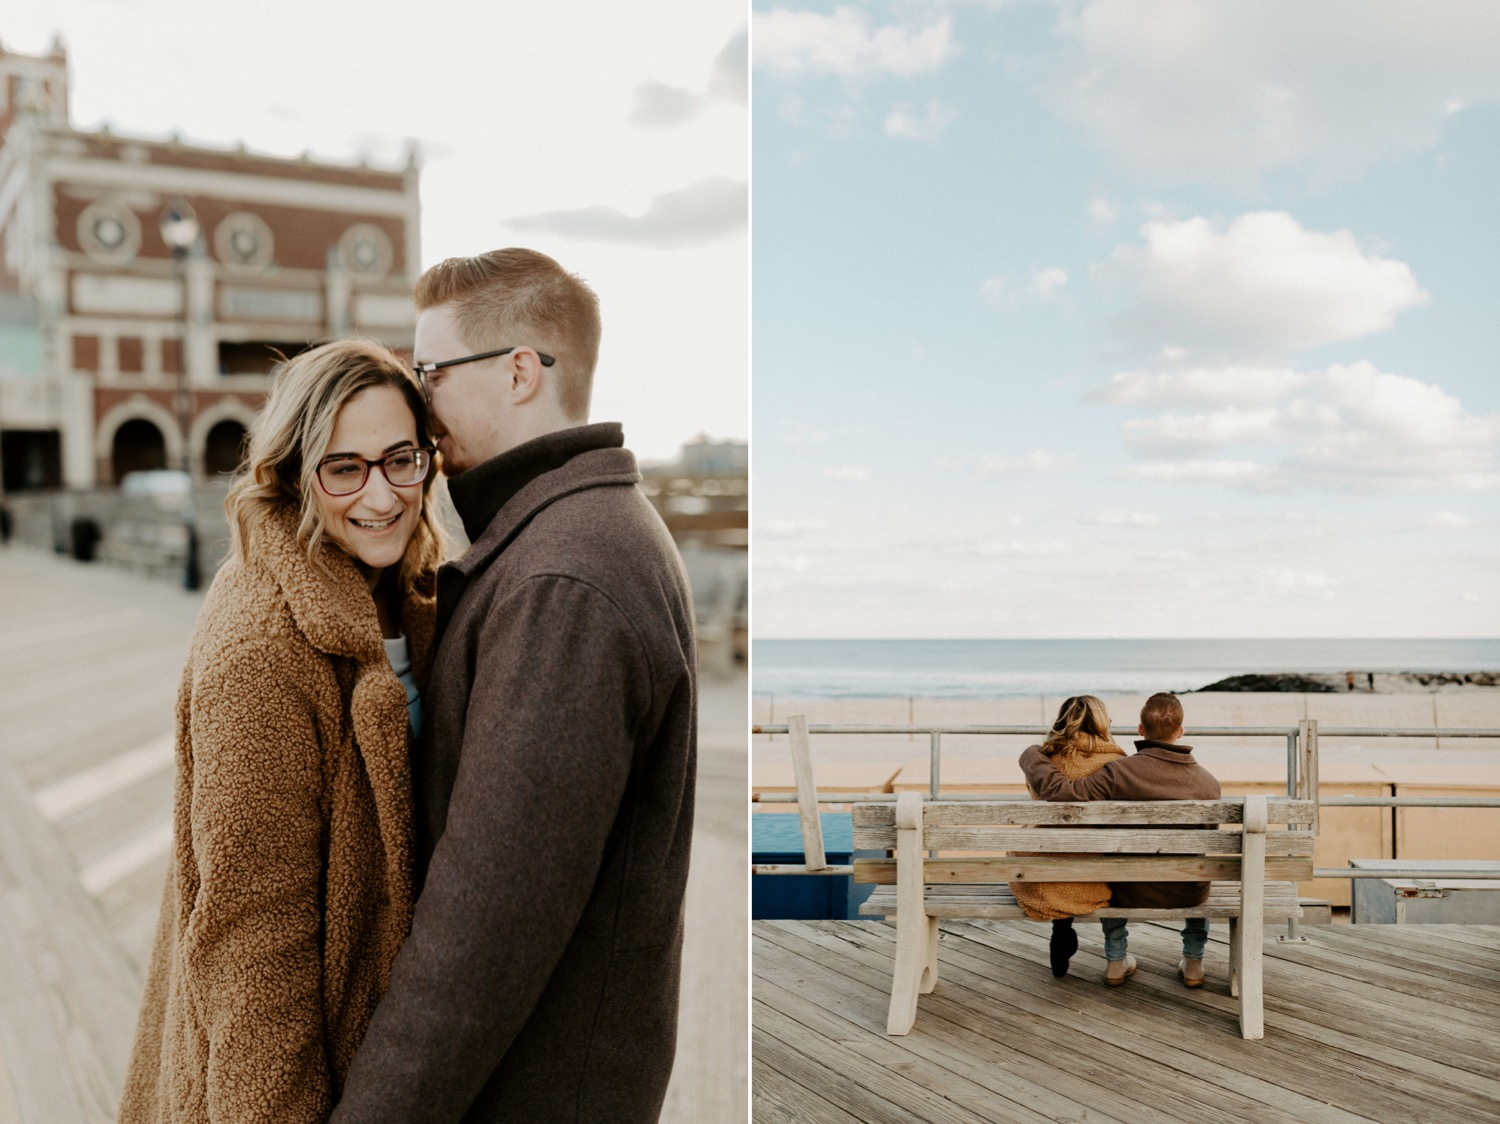 Asbury Park Engagement Photos Winter Beach Engagement Session New Jersey Wedding Photographer Anais Possamai Photography 004